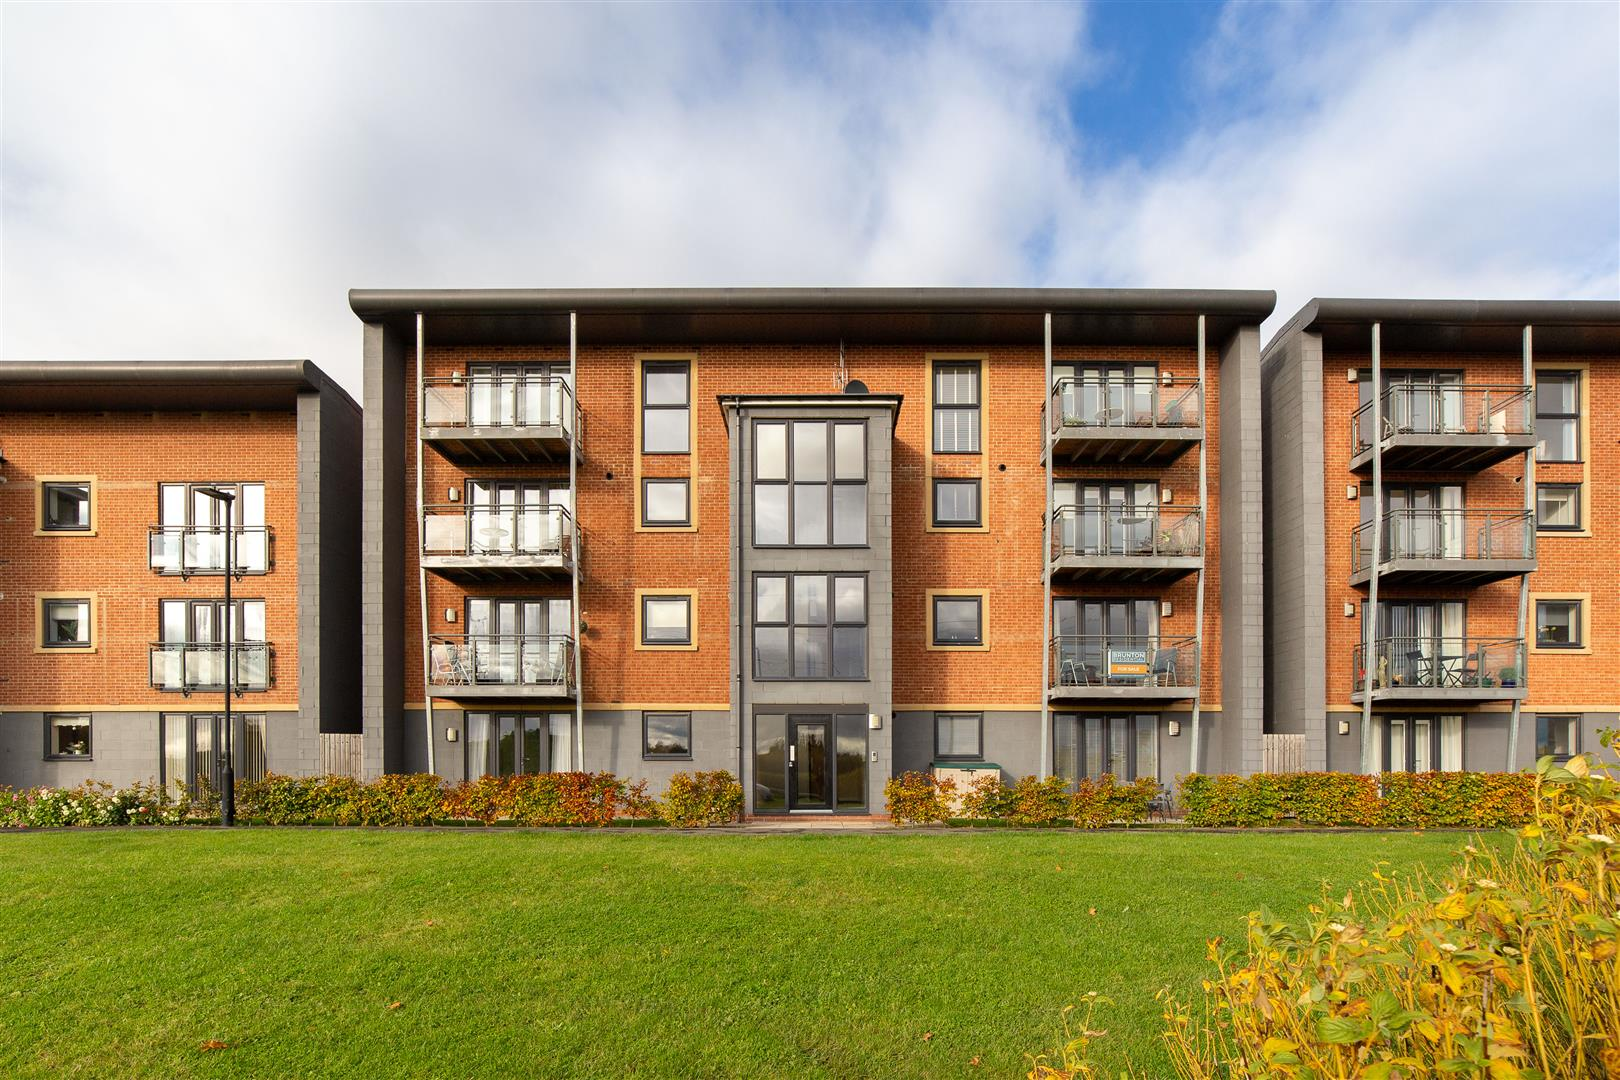 2 bed flat for sale in Great Park, NE13 9BP, NE13